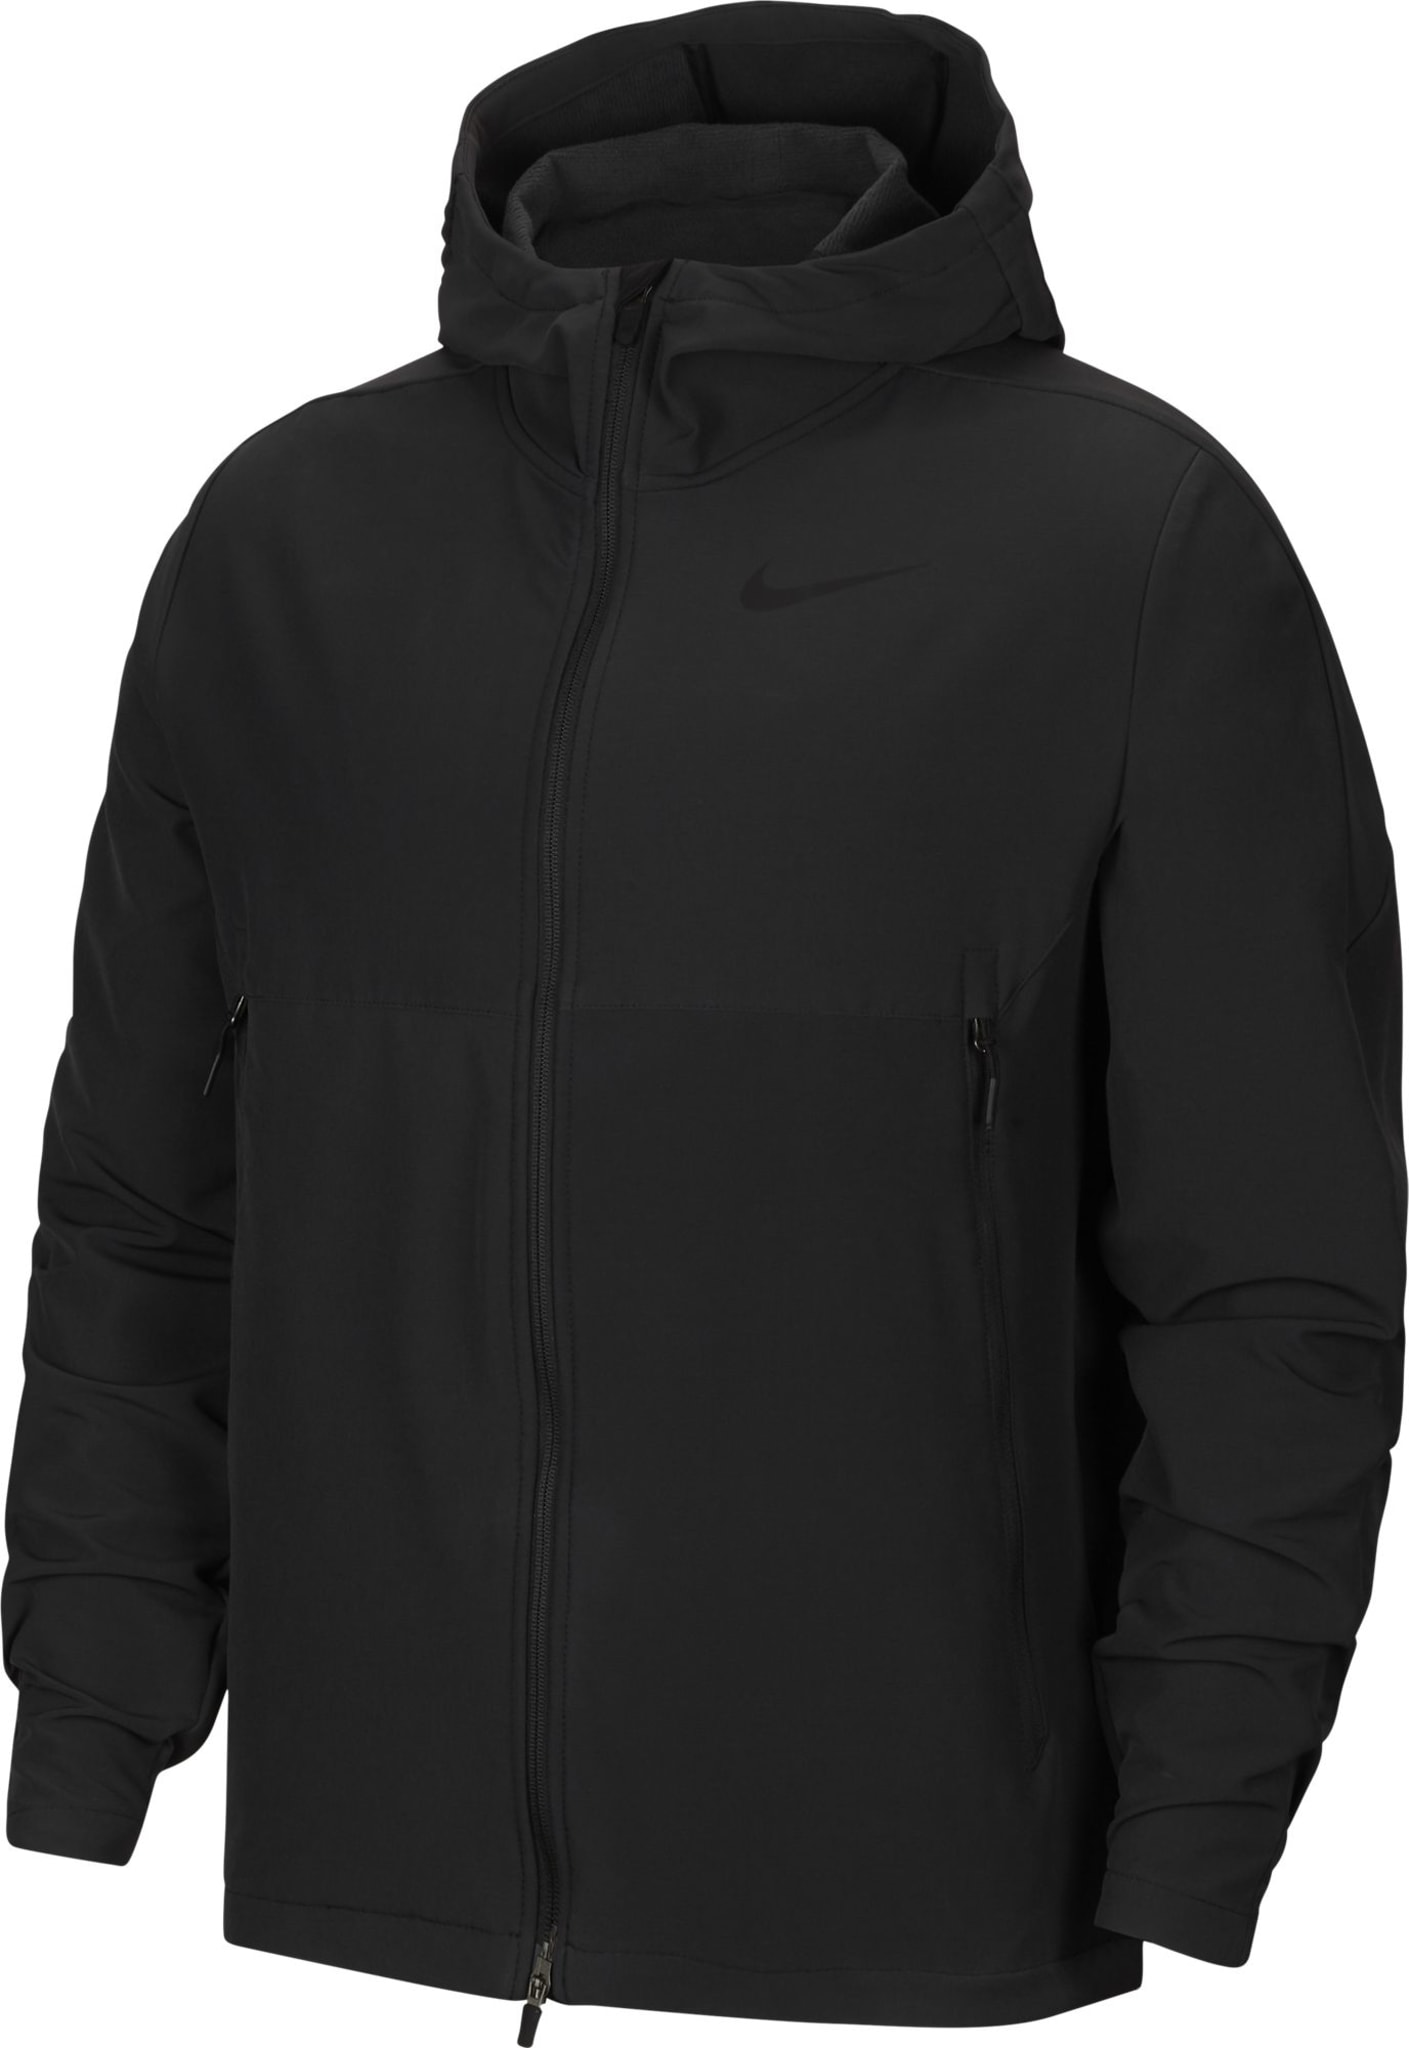 Therma Woven Training Jacket M